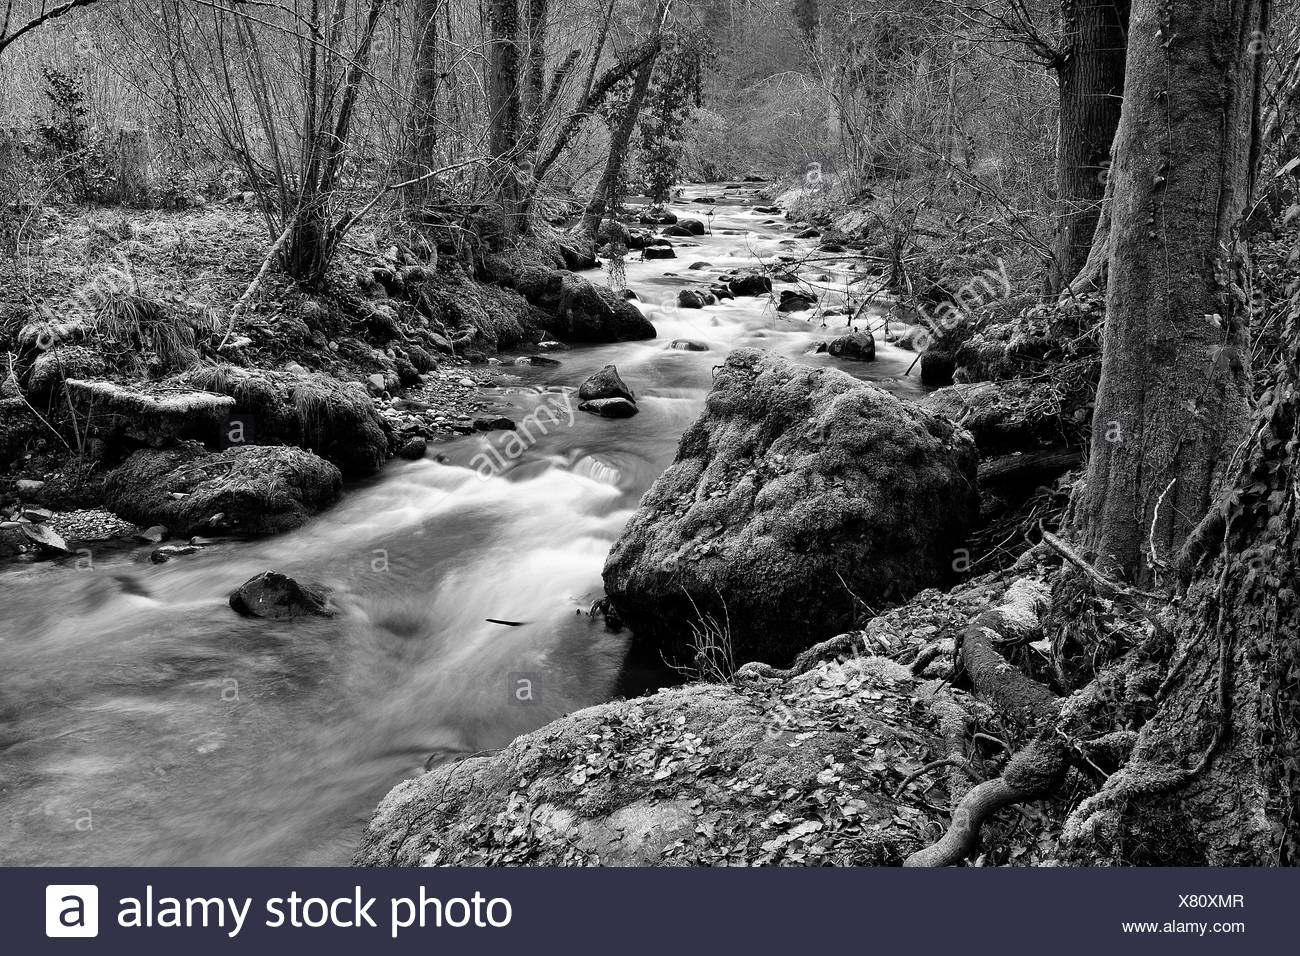 Jonen river undergrowth - Canton of Zurich Switzerland - Stock Image